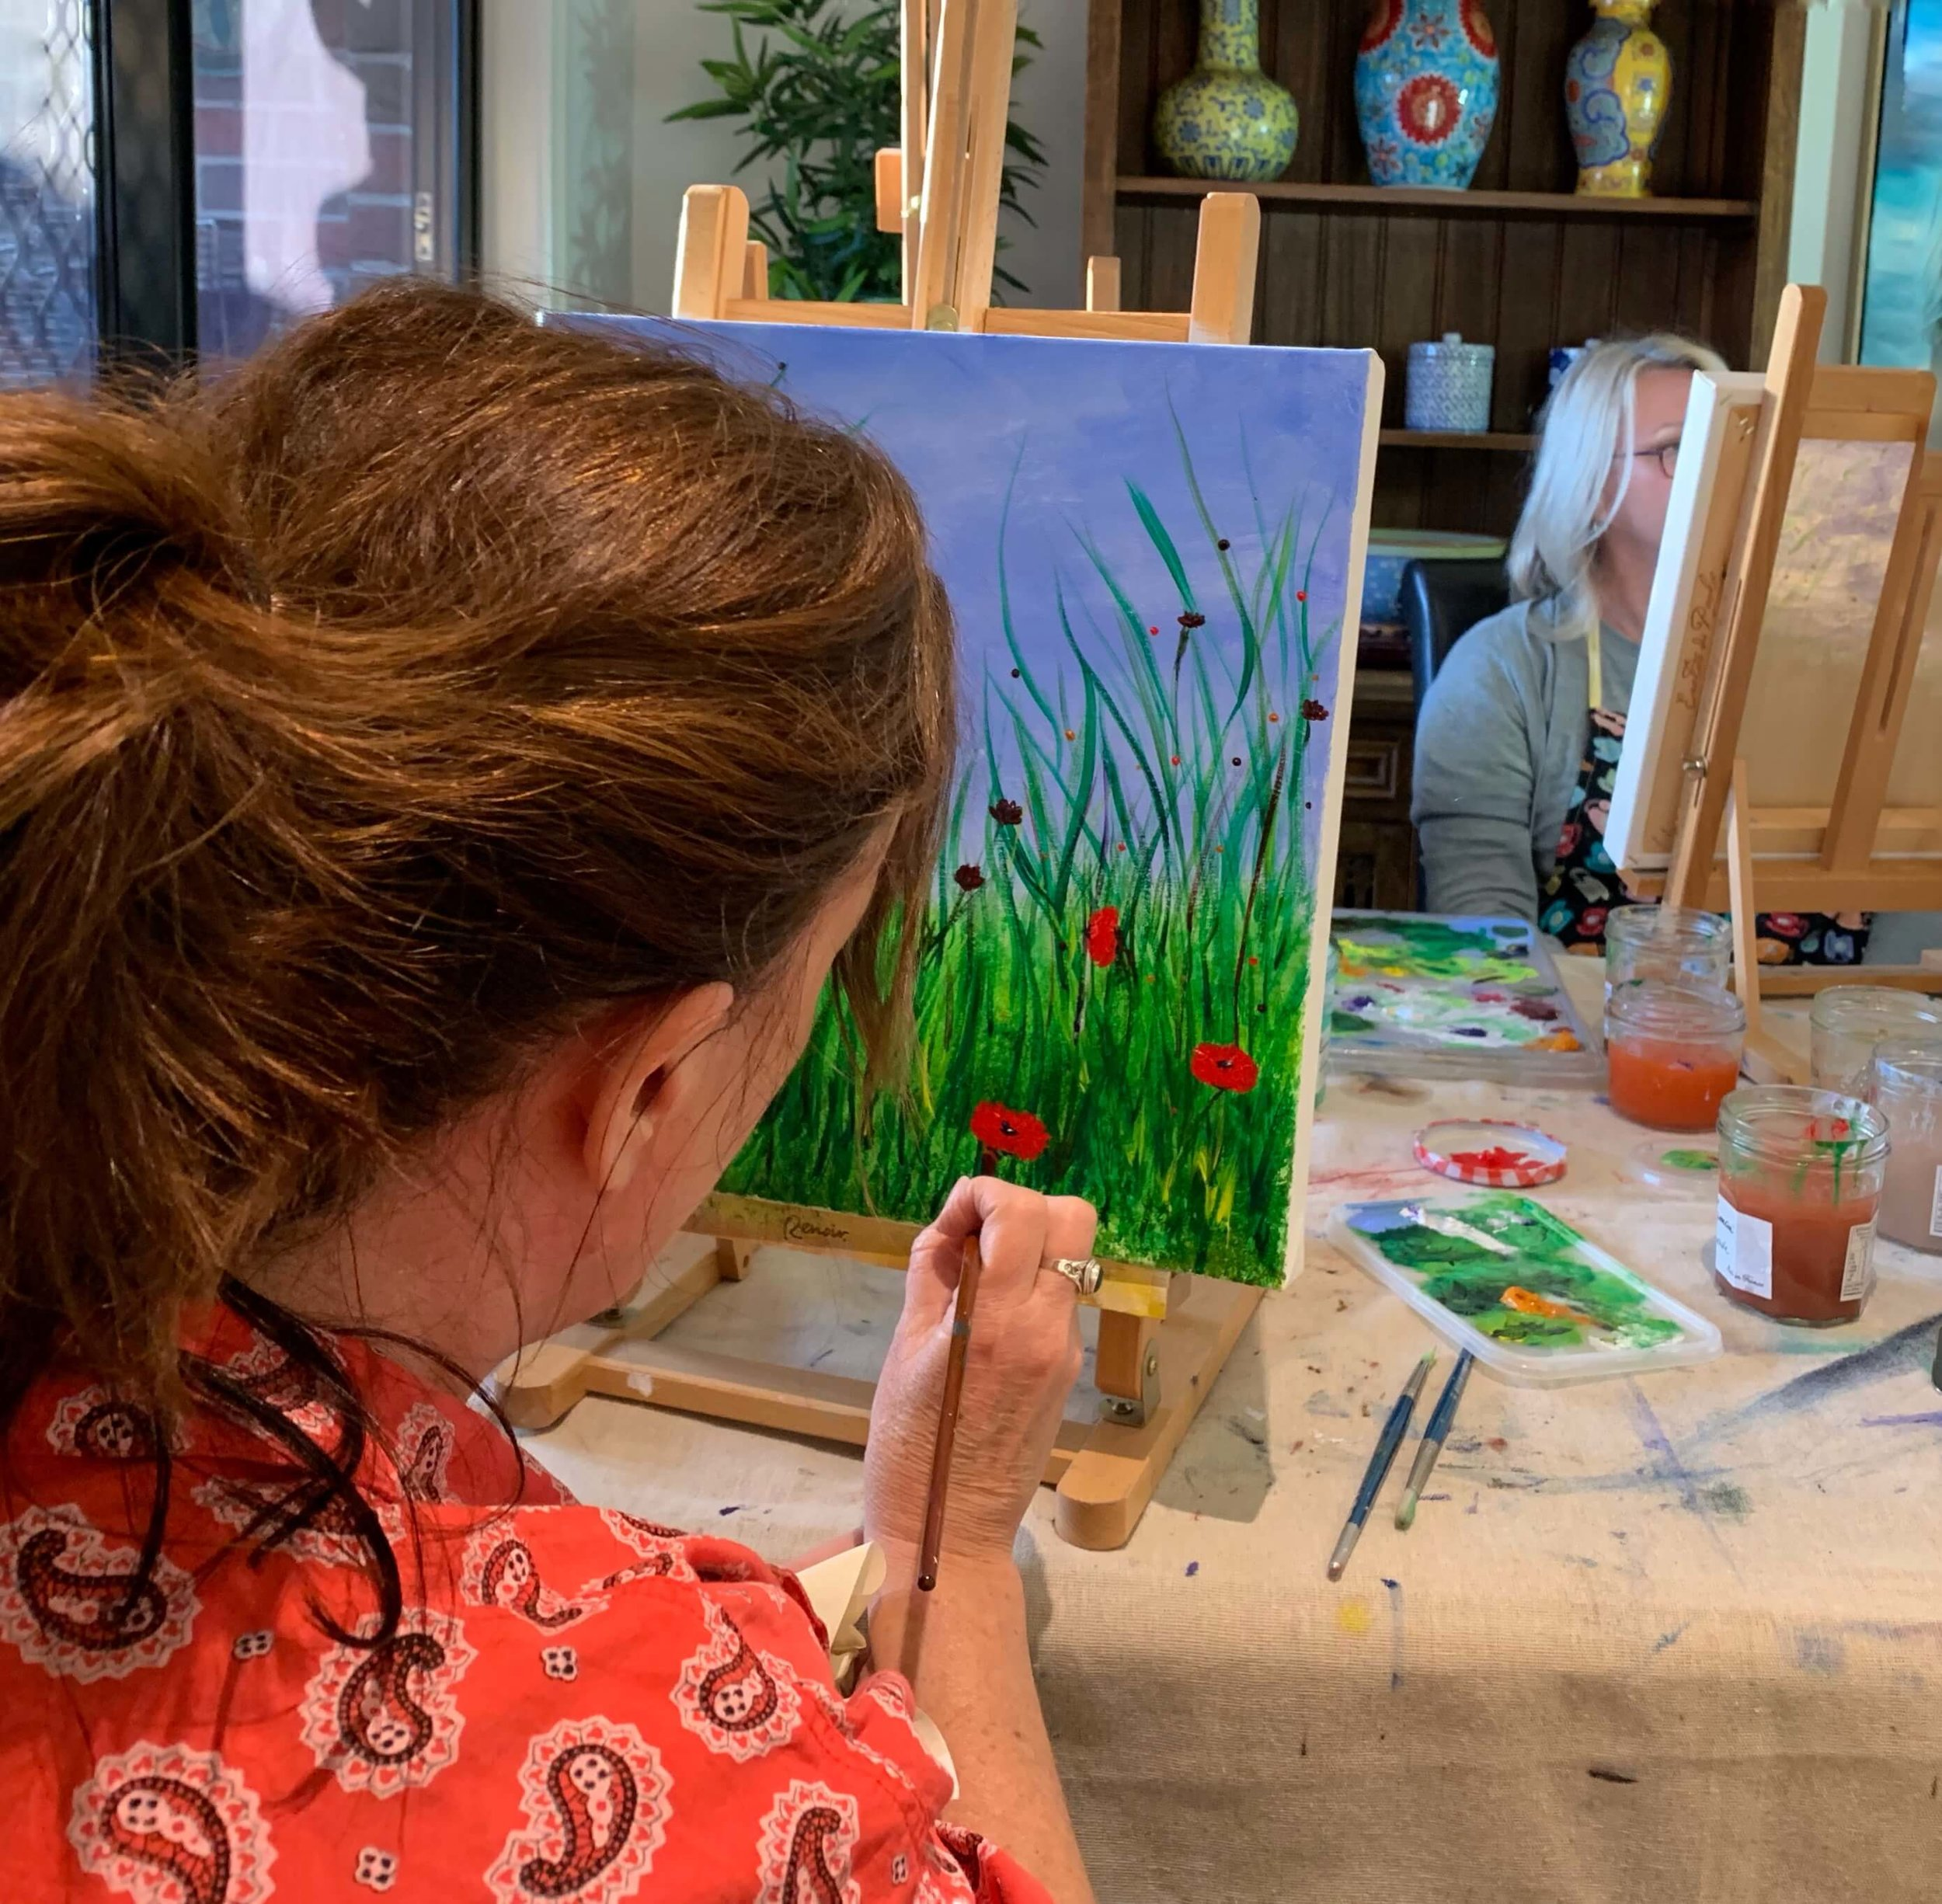 Wildflower-painting-course-melbourne.JPG